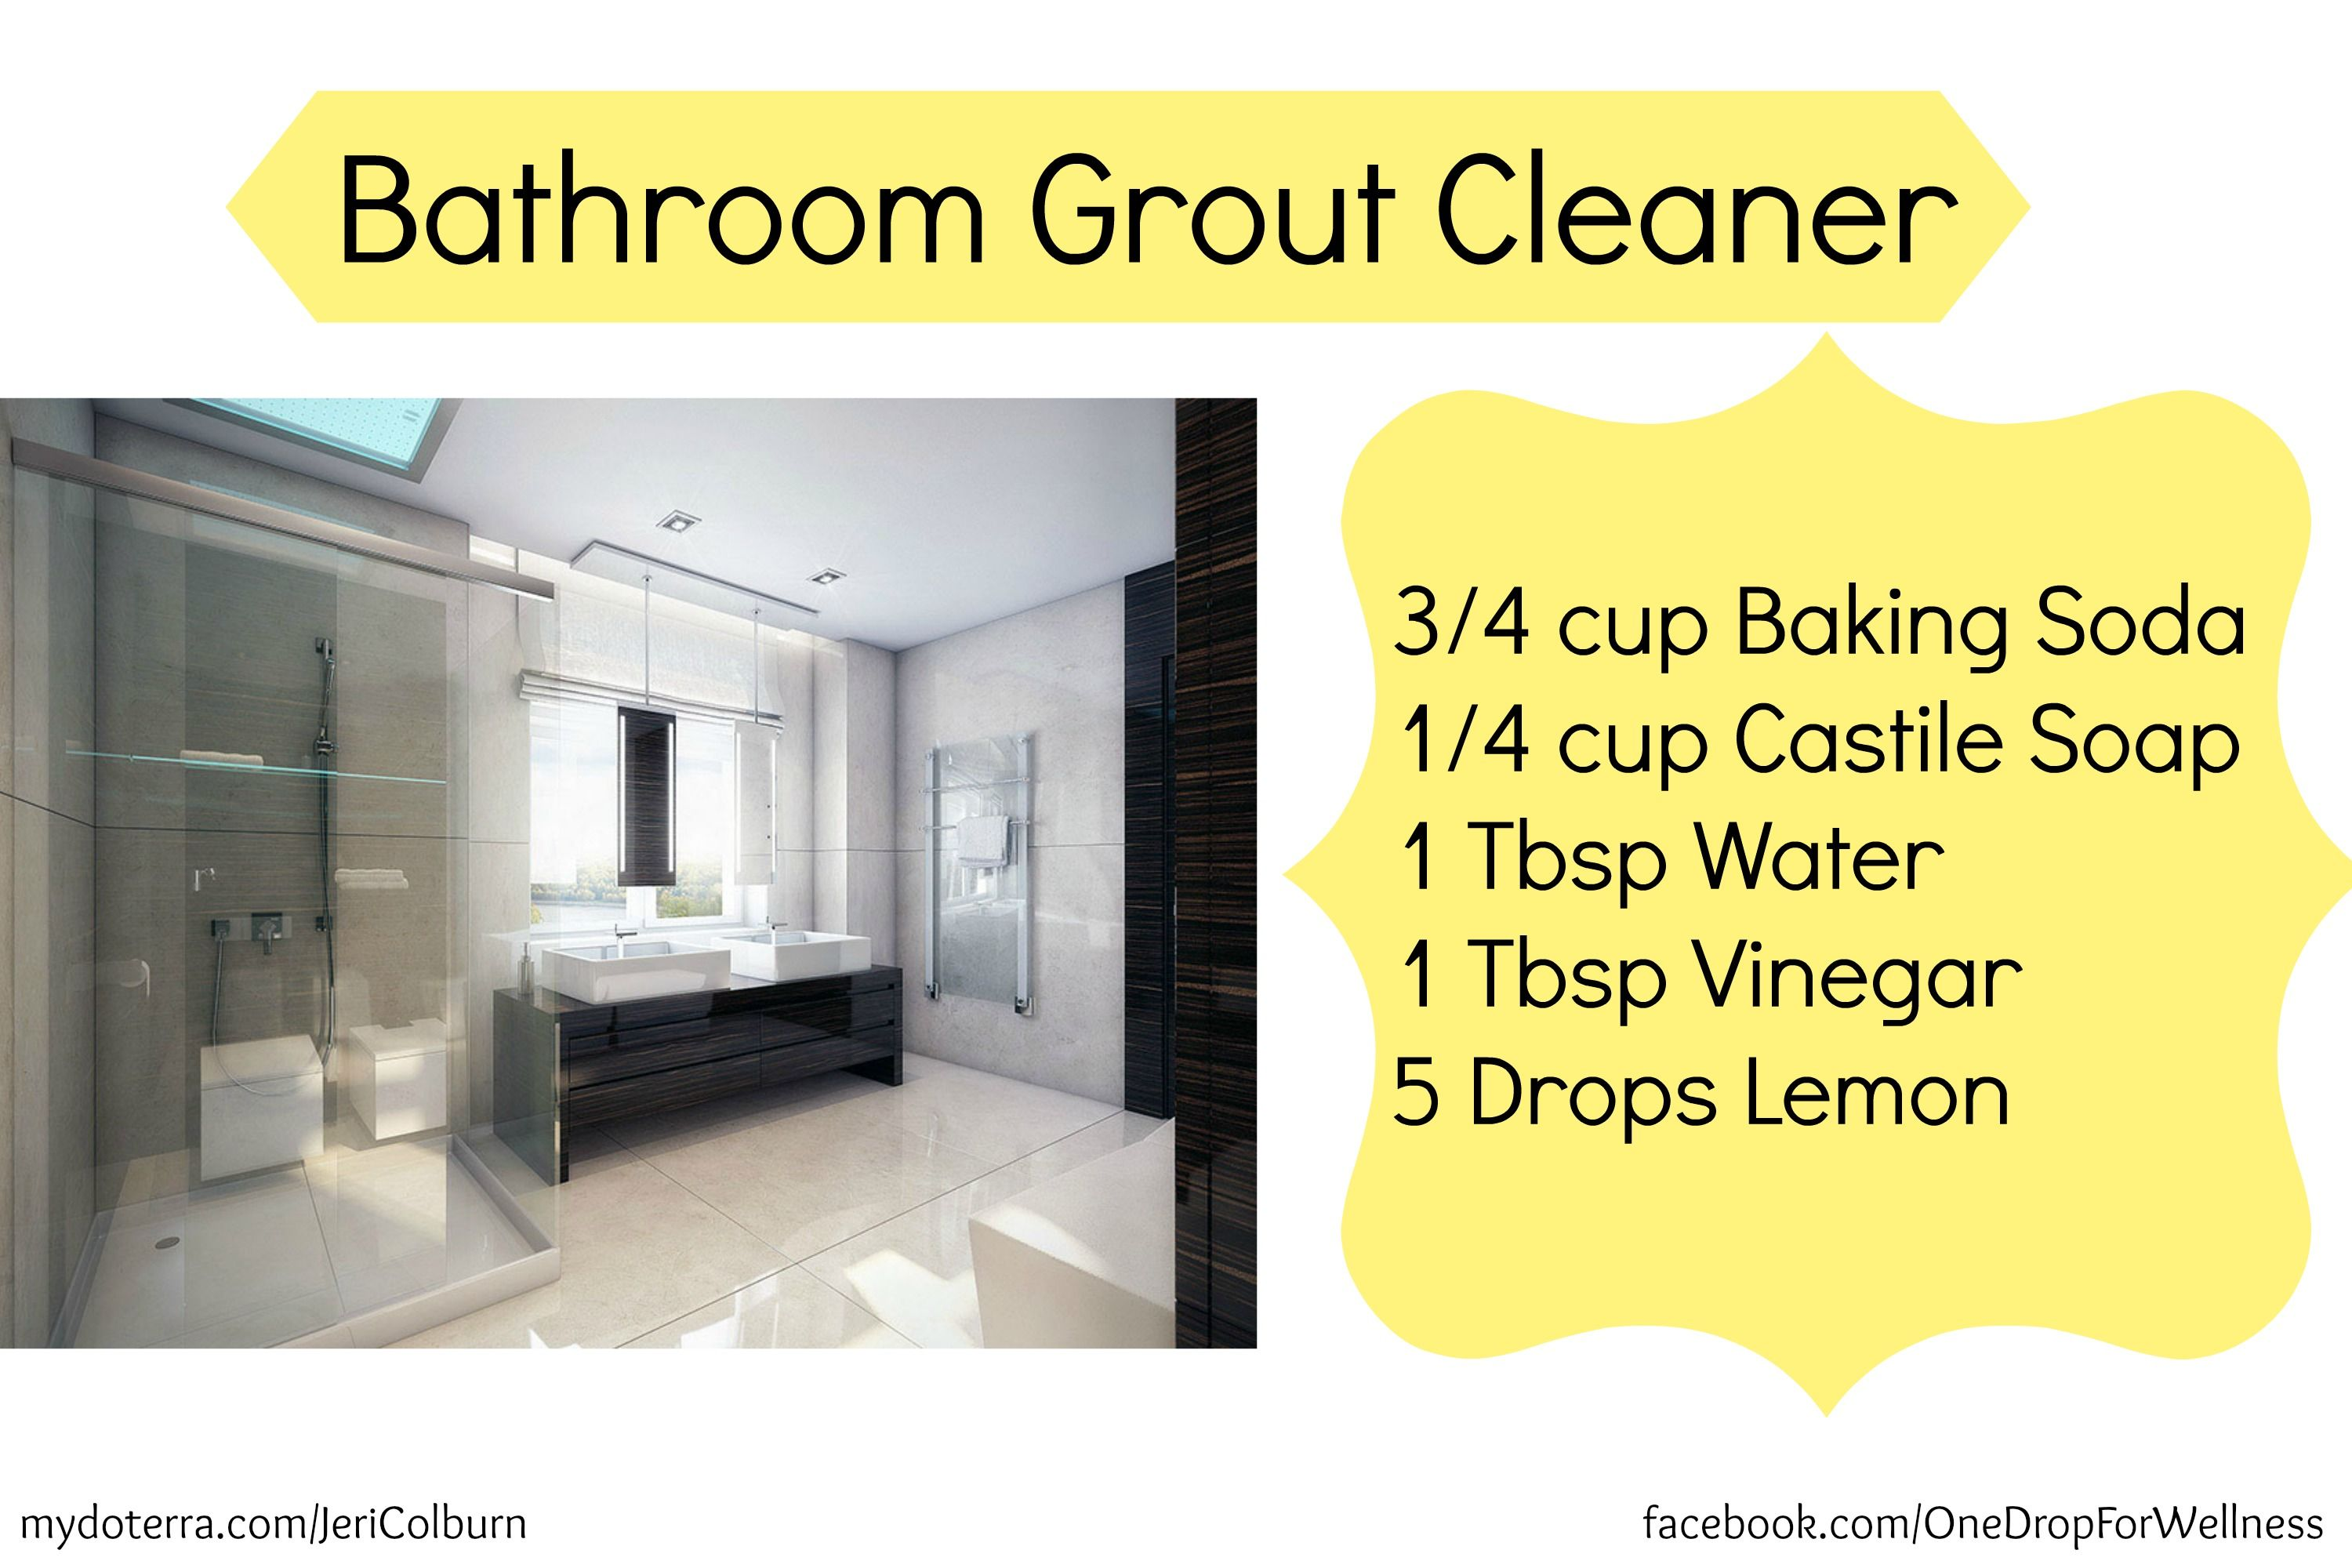 Diy bathroom grout cleaner with doterra essential oils - Diy bathroom cleaner essential oils ...